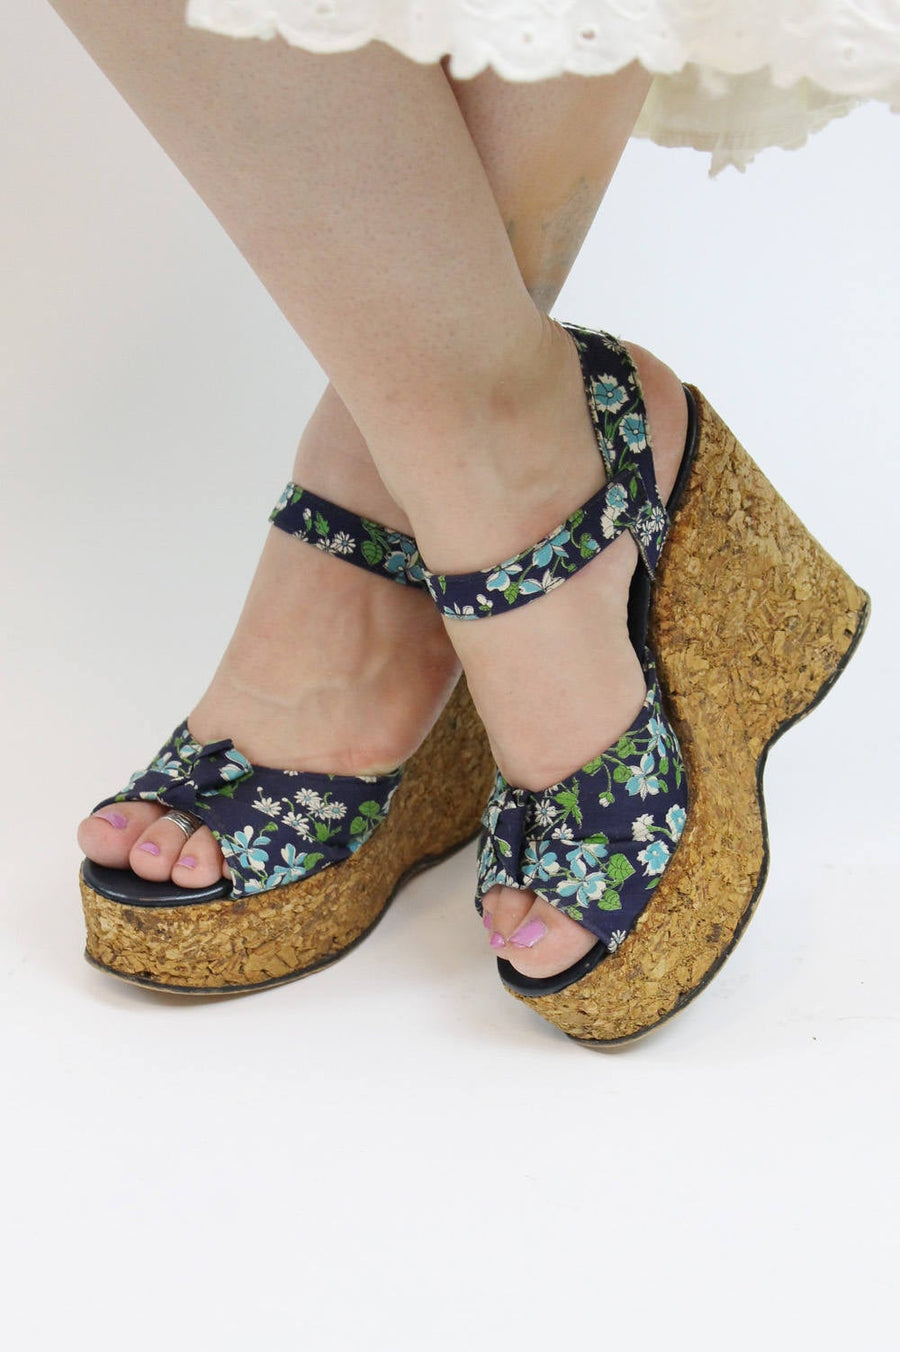 1970s cork sandals shoes size 5.5 us | vintage floral peep toe wedges platforms